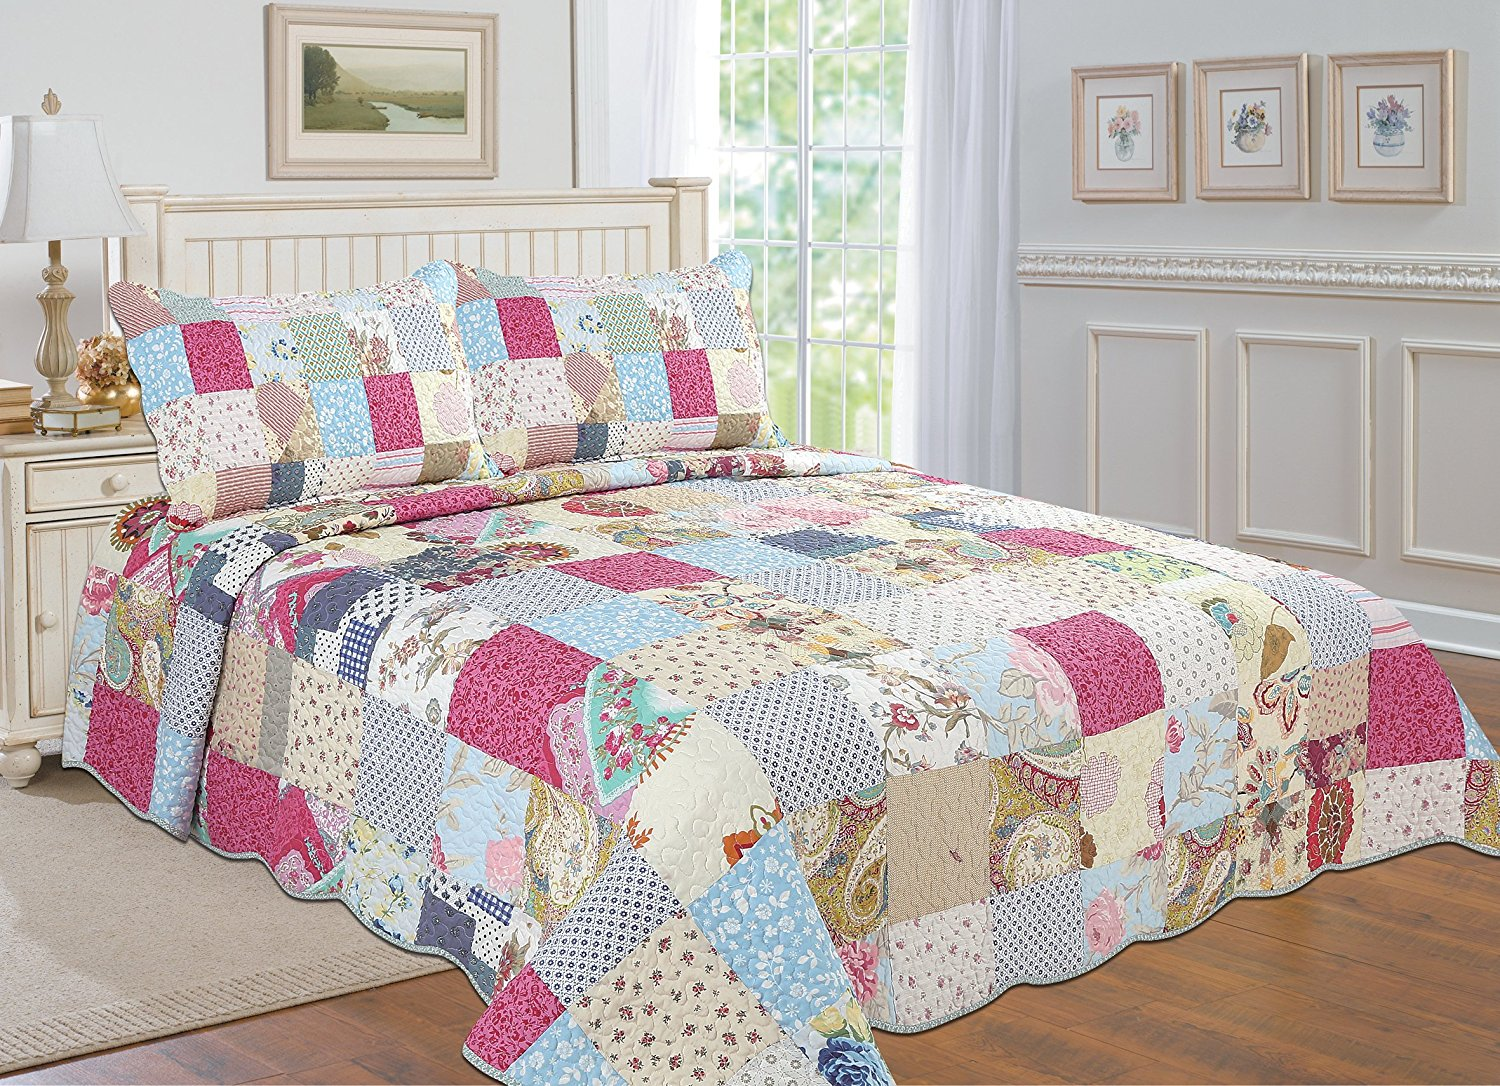 All for You 3-piece Reversible Bedspread  Coverlet   Quilt Set- OverSize-Real patchwork... by All For You Home